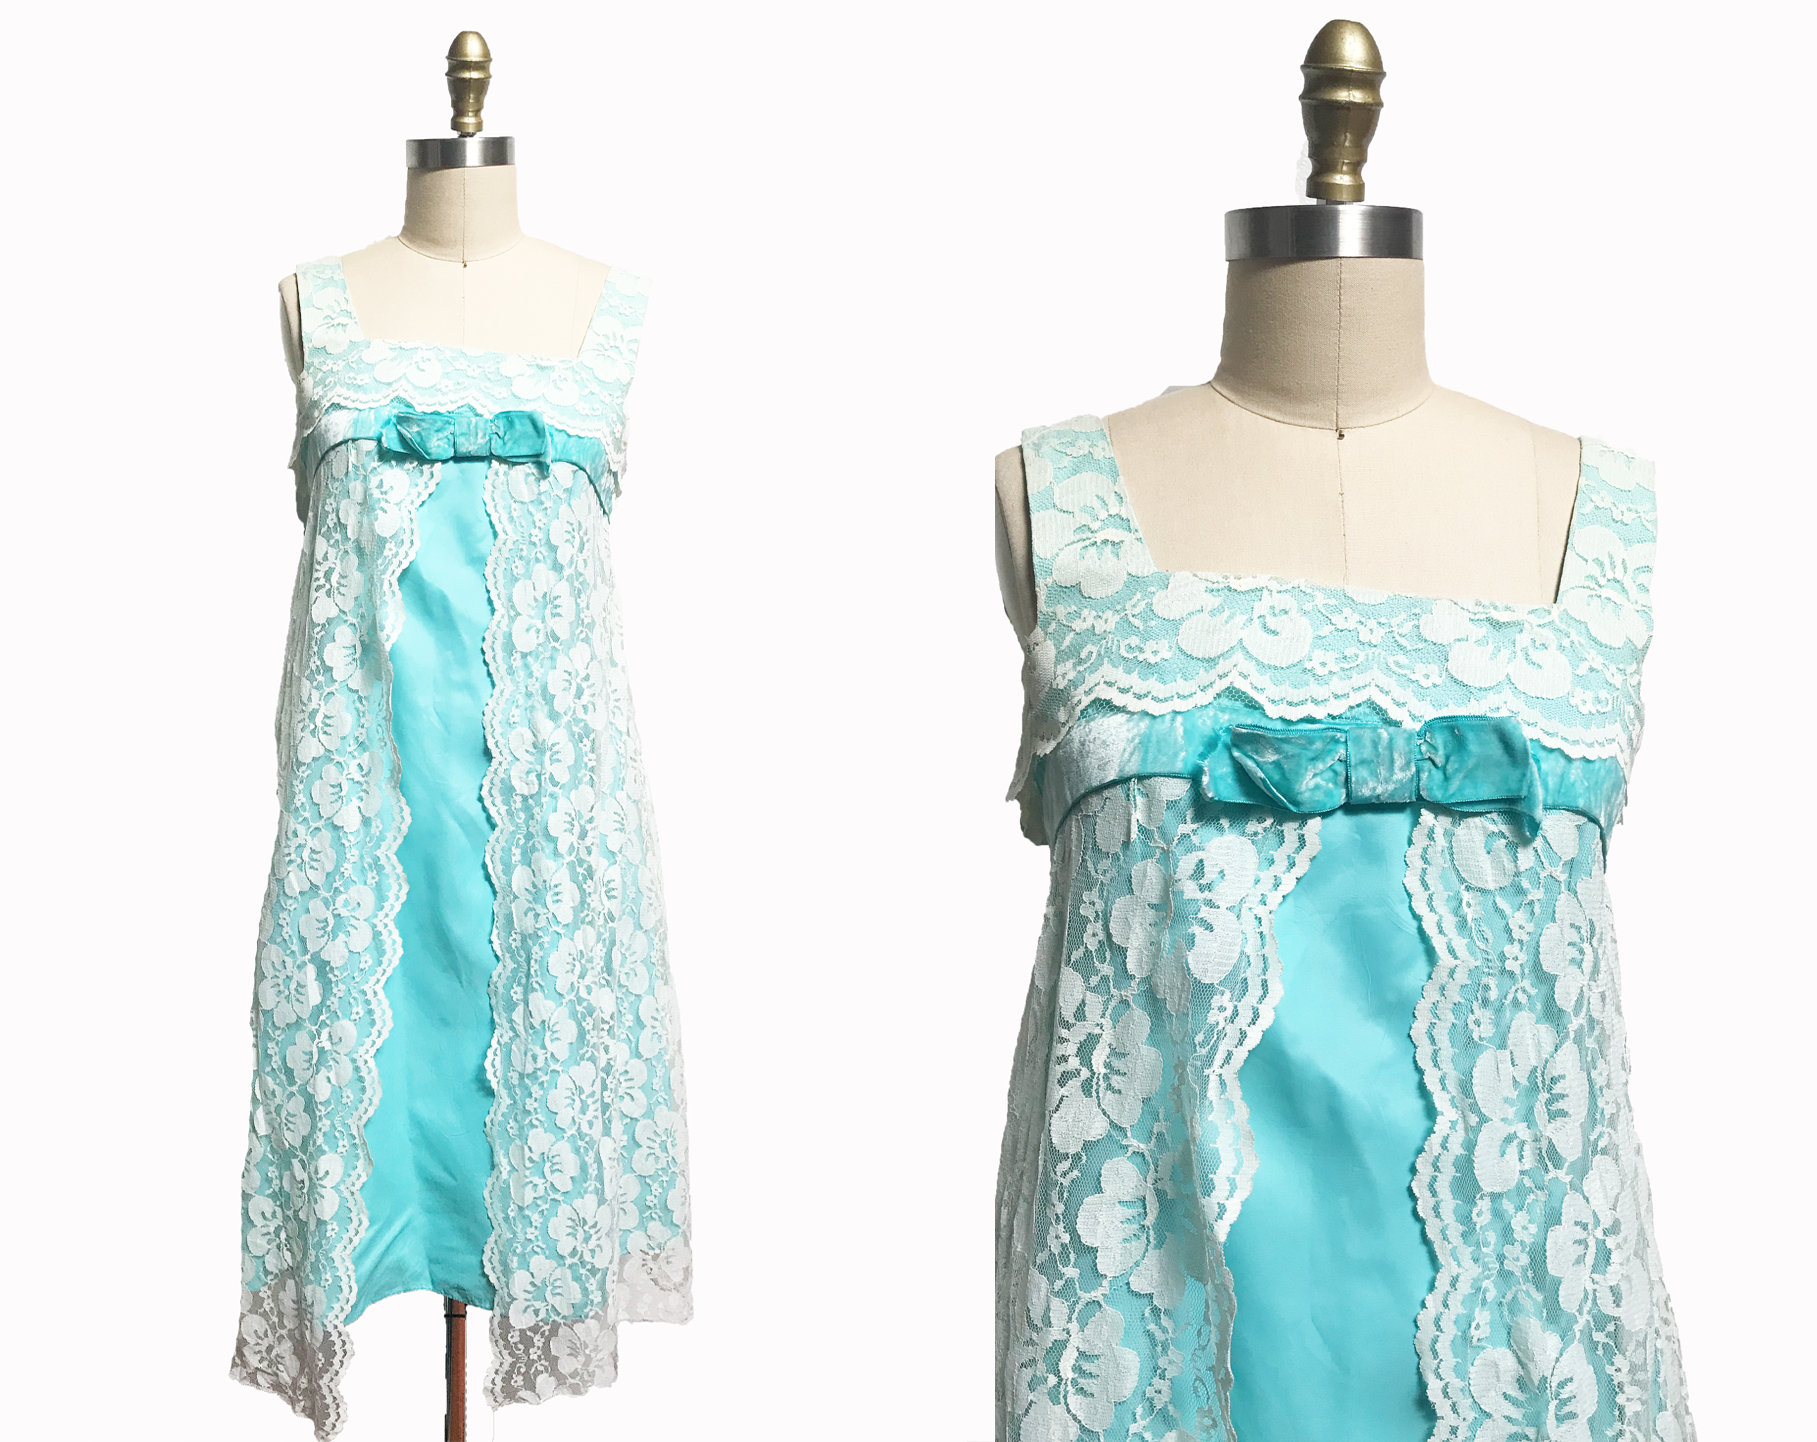 60s -70s Jewelry – Necklaces, Earrings, Rings, Bracelets Vintage 1960s Baby Blue Lace Mod Dress - Marvelous Mrs. Maisel Nightgown Party Cocktail Twiggy Medium $95.00 AT vintagedancer.com